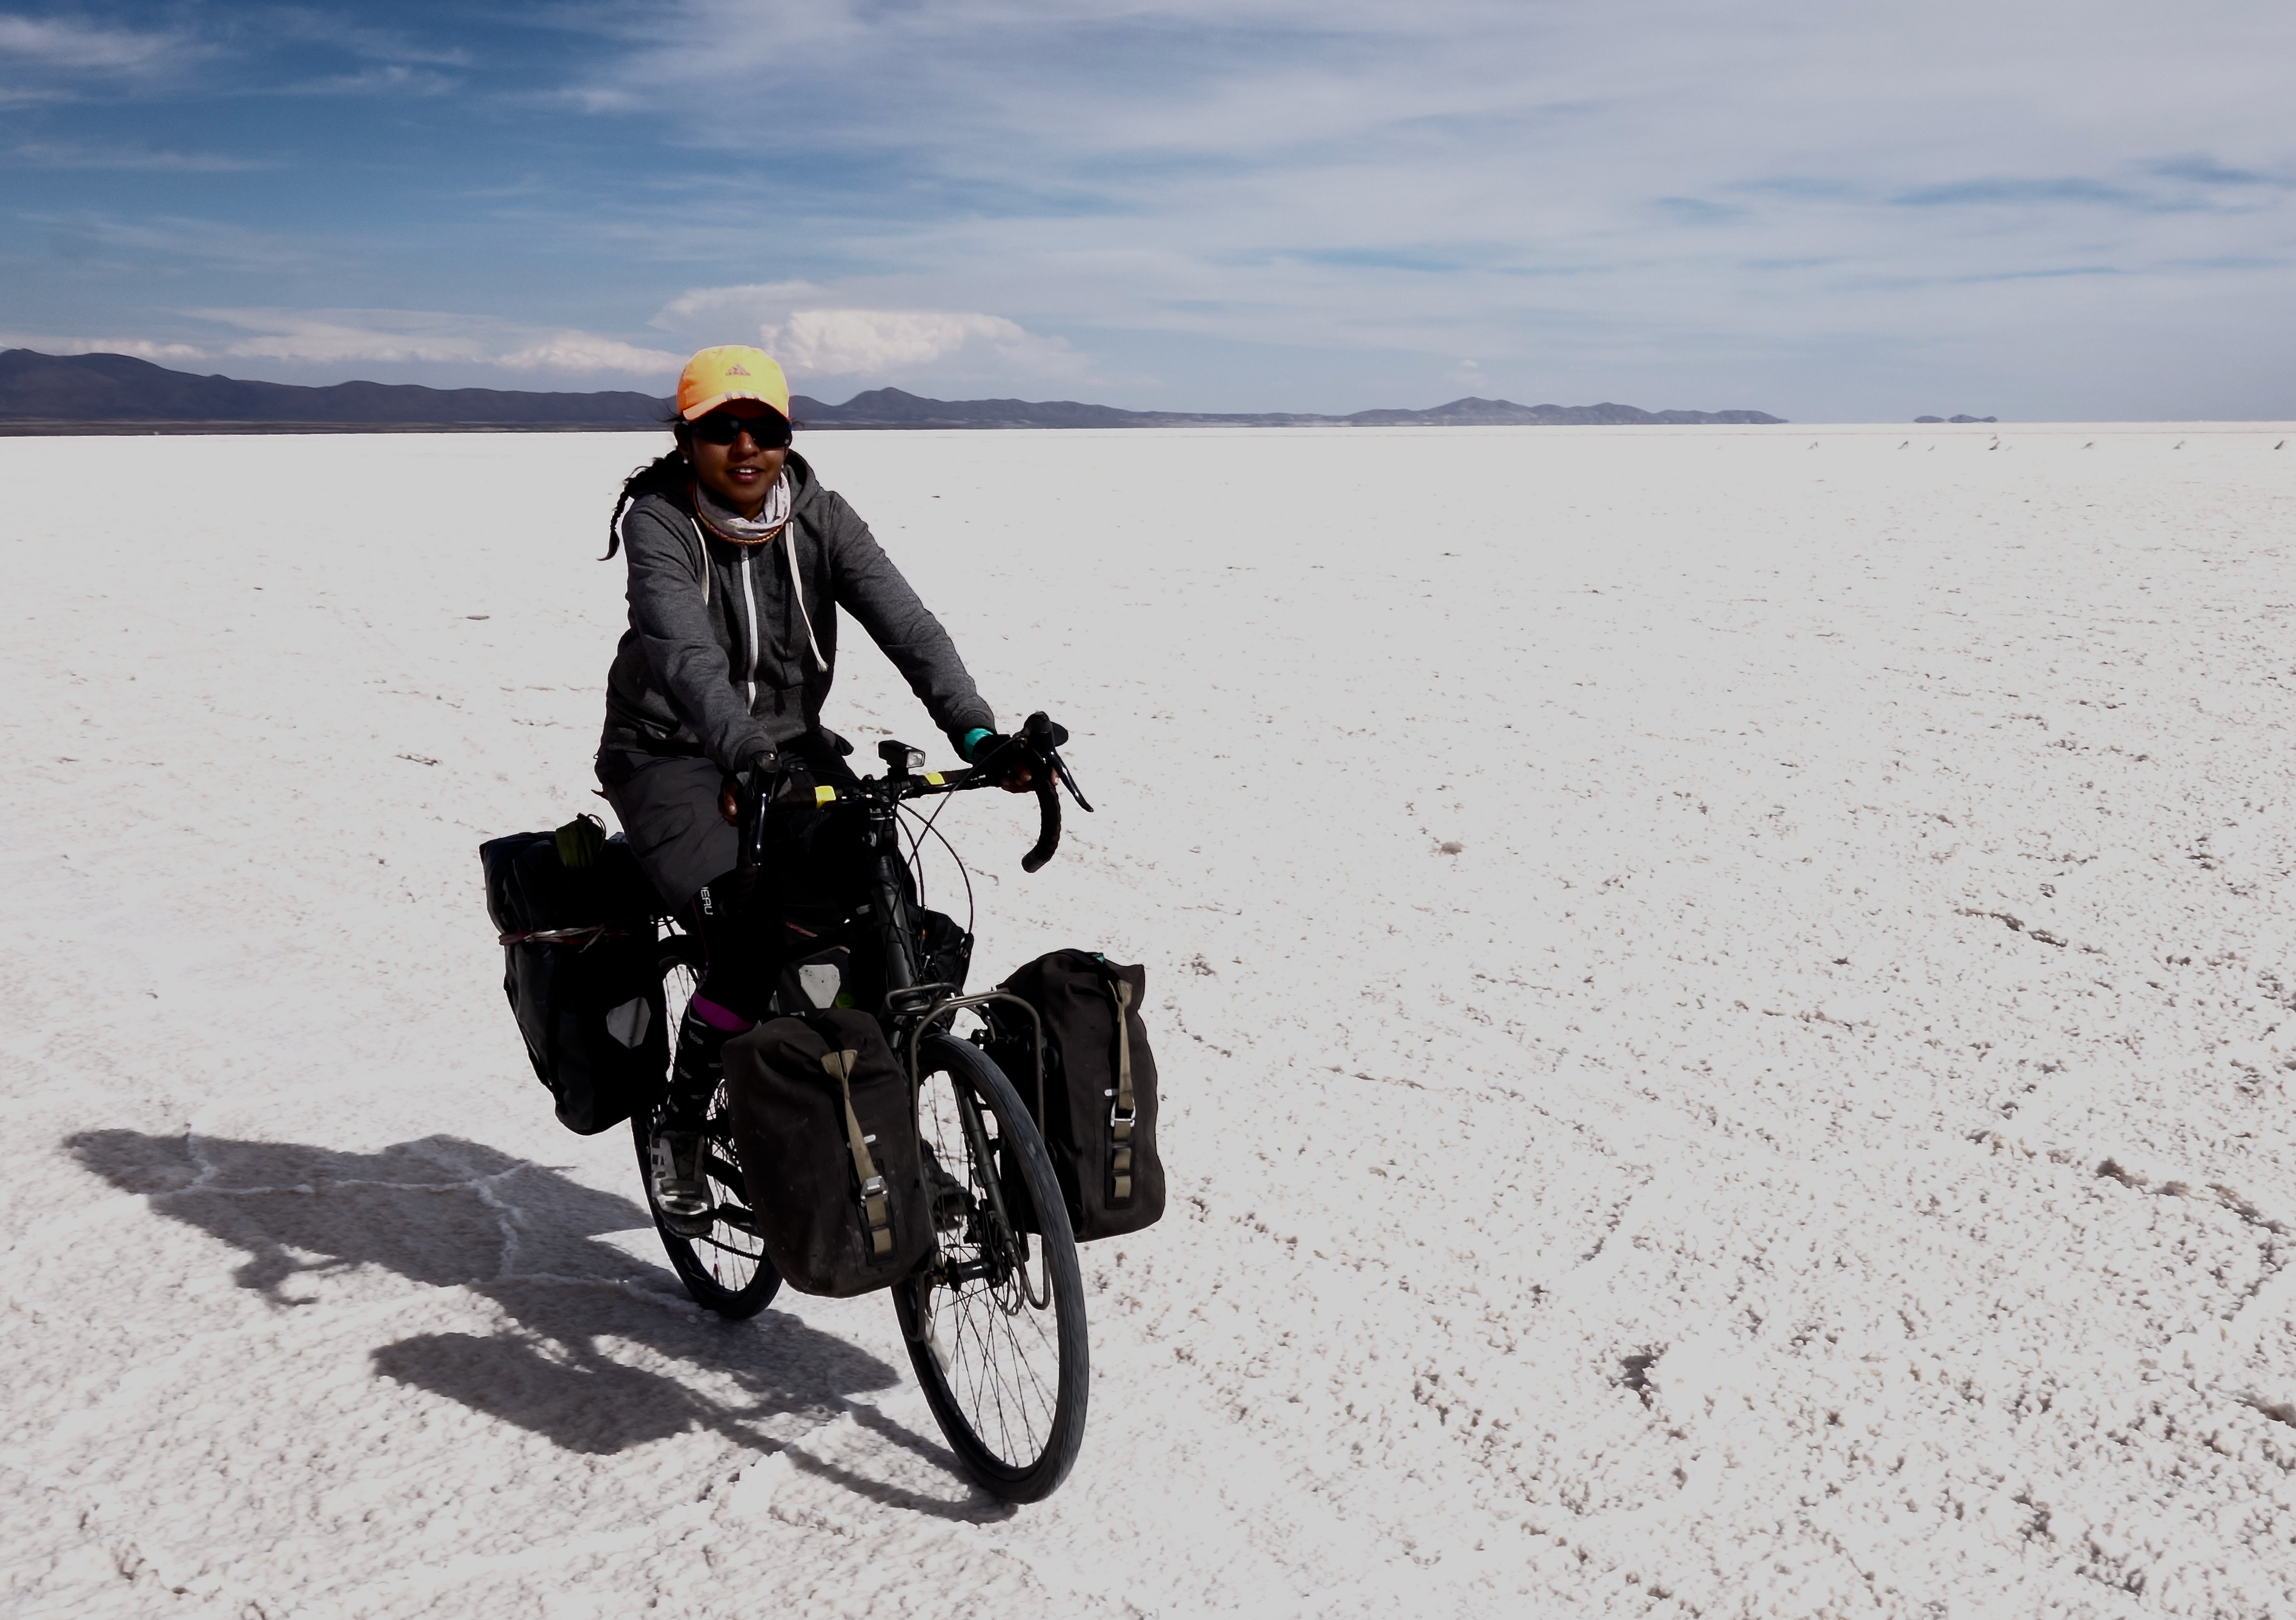 Cycling through the Uyuni Salt Flats in Bolivia, during a 24,000 km bicycle journey from Alaska to Argentina